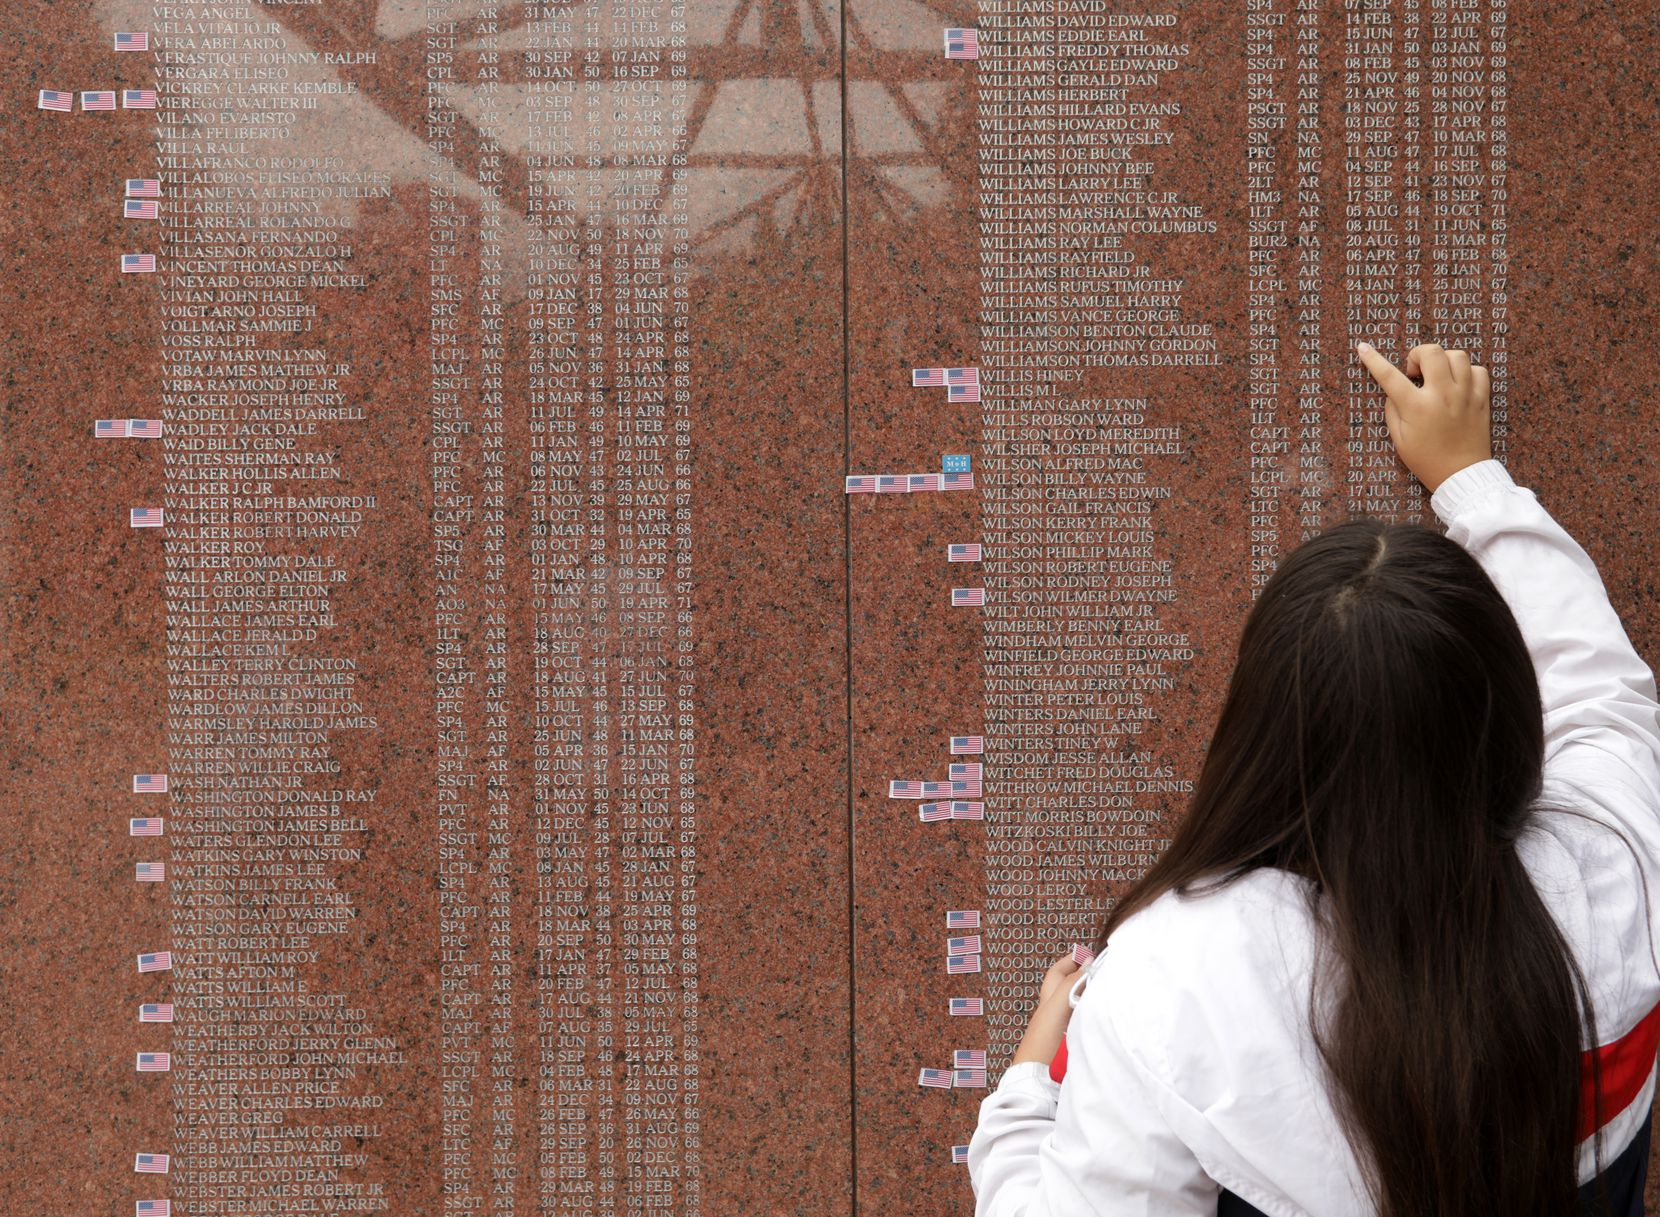 A visitor to the Texas Vietnam Veterans Memorial on Monday scans the names and dates. More than 3,000 names are engraved in the red granite tablets.